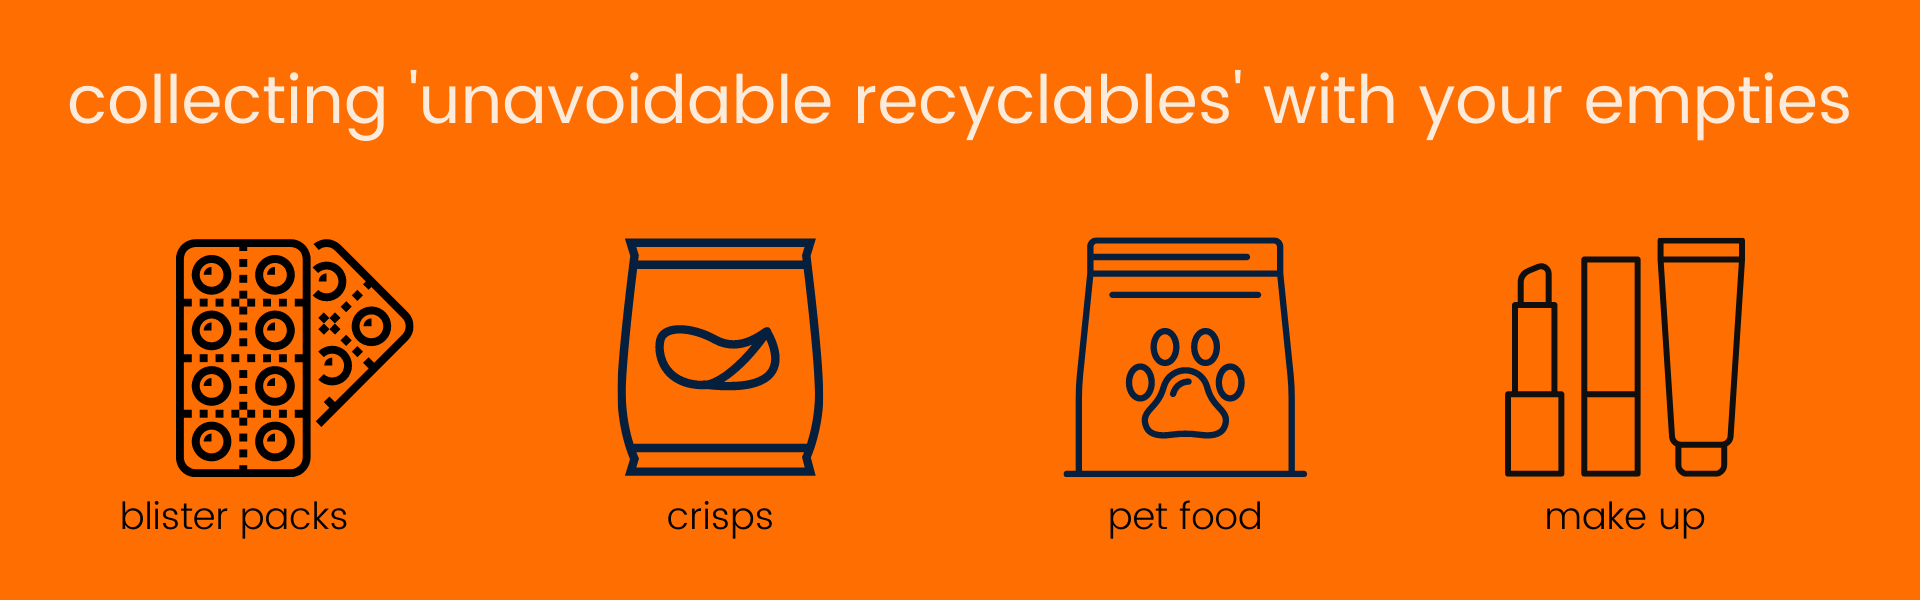 collecting unavoidable unrecyclables